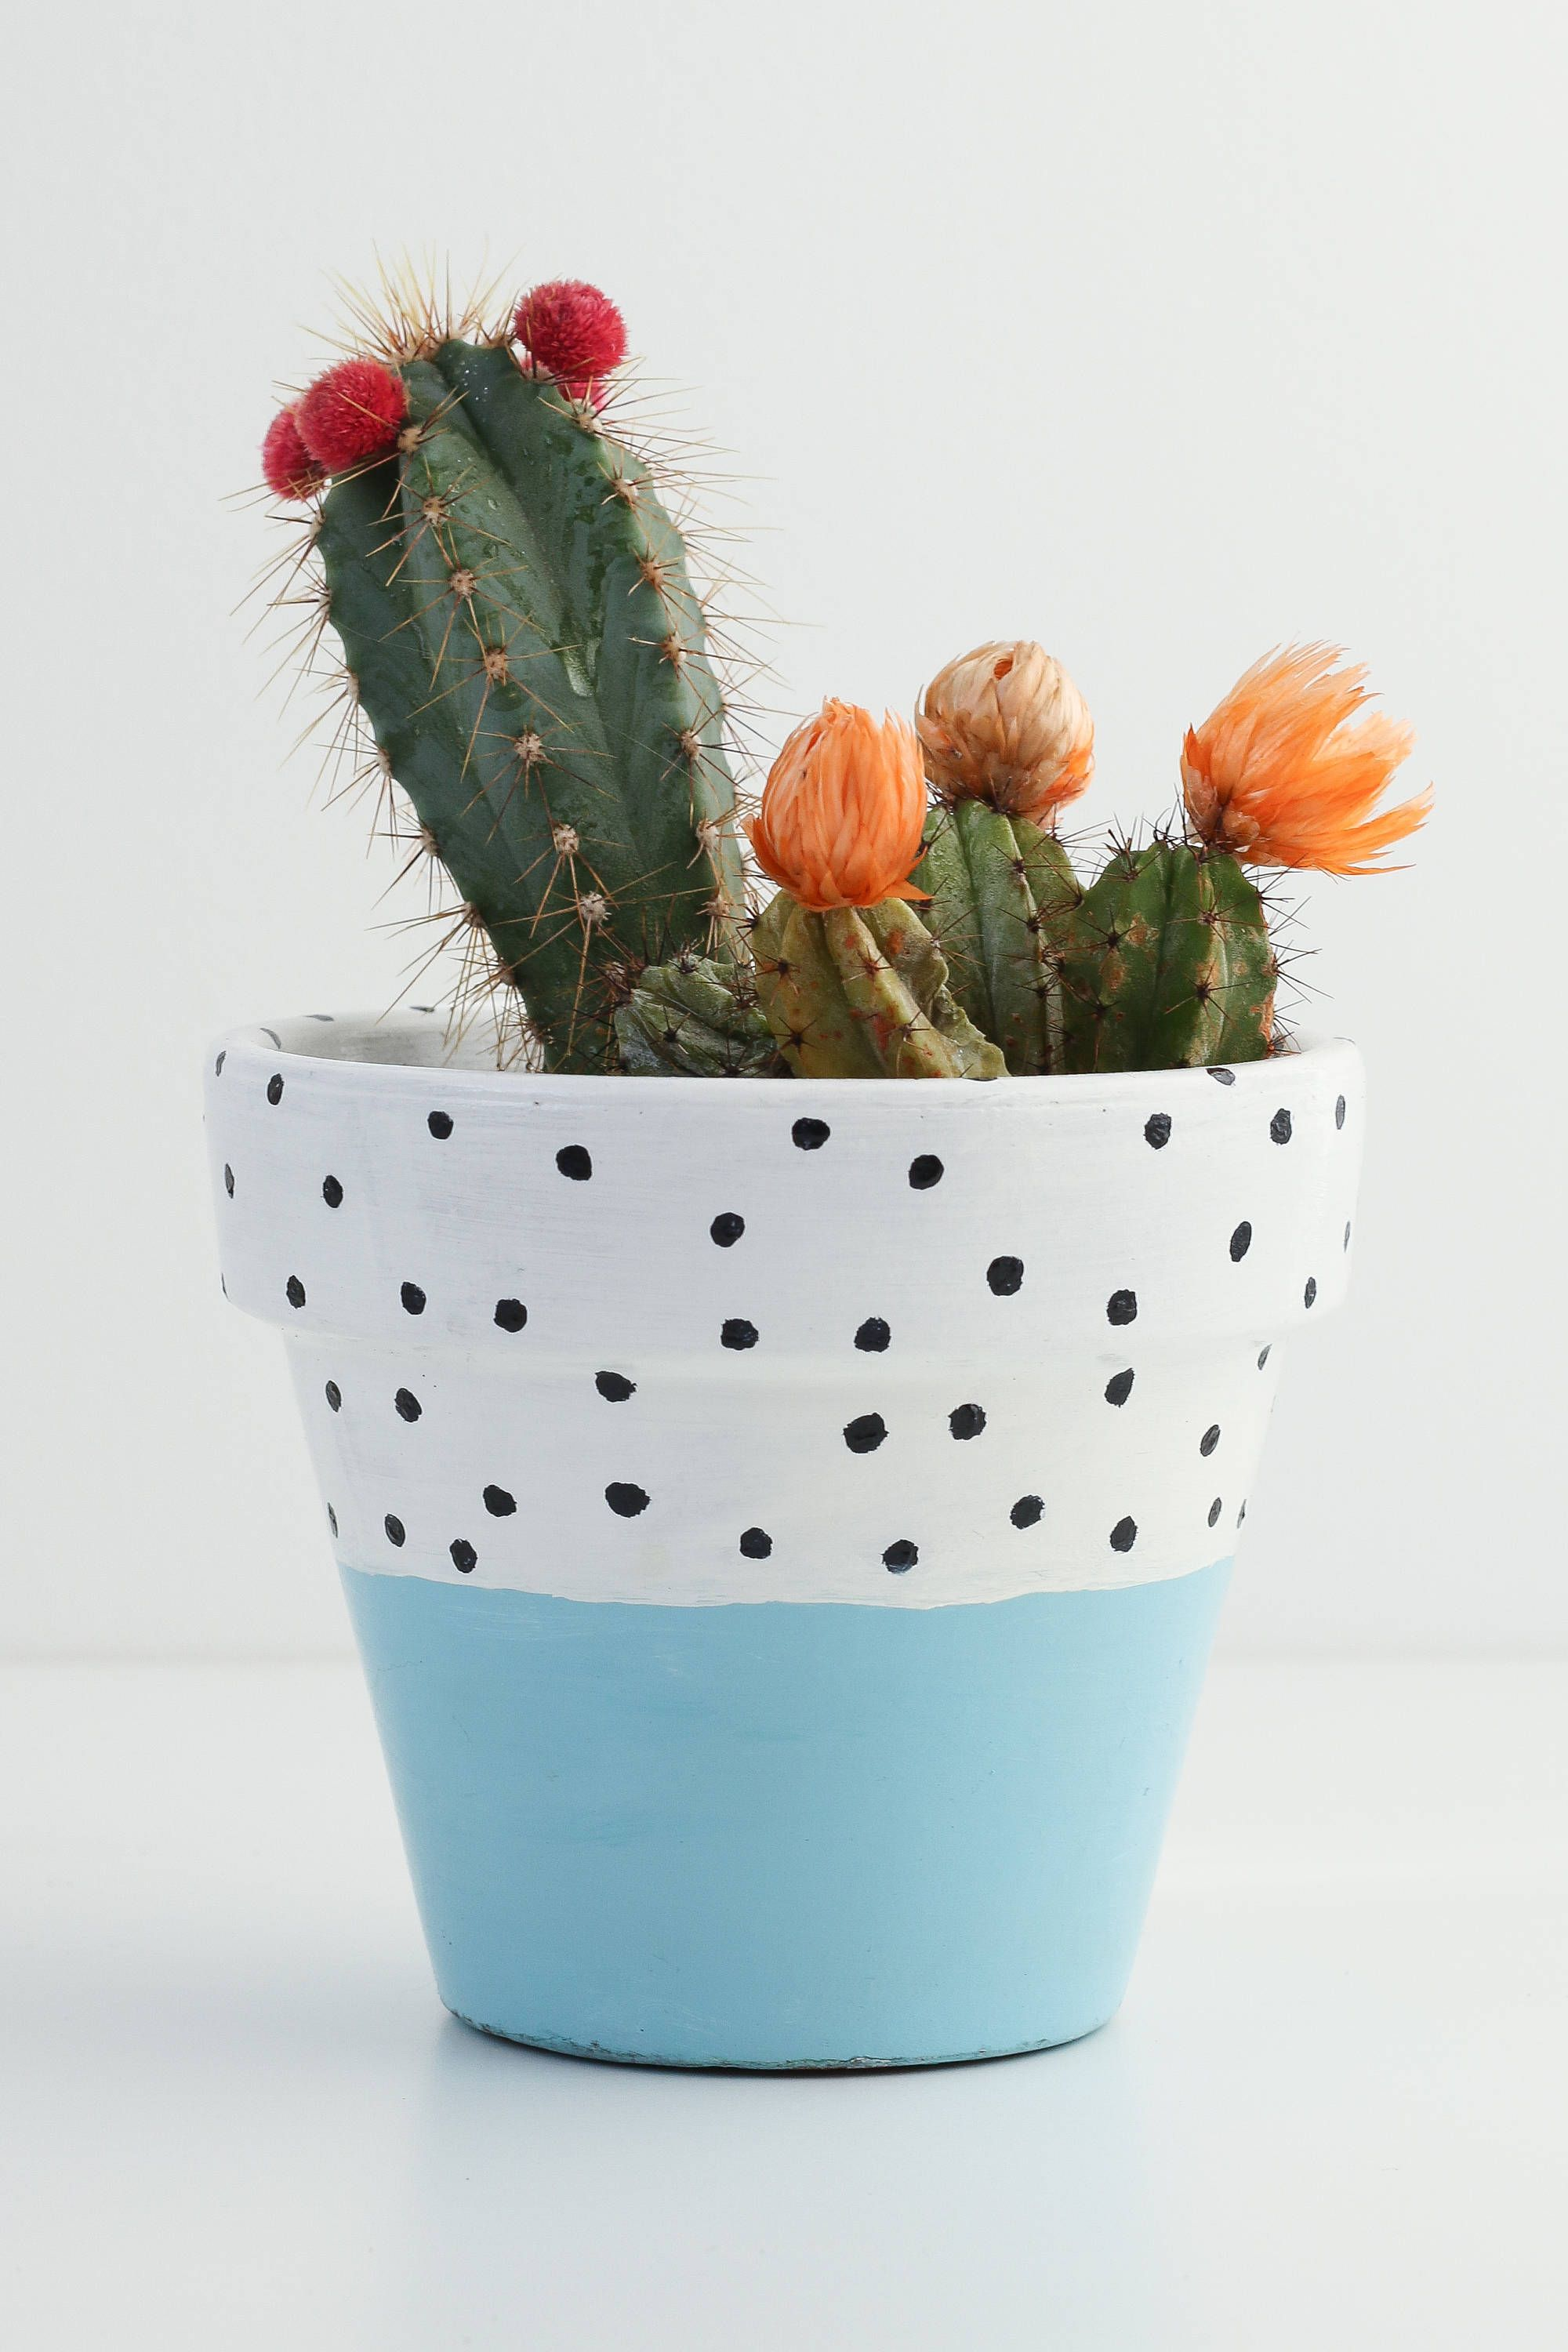 Pastel Blue White And Black Polka Dot Plant Pot 11cm X 9 5cm Indoor Or Outdoor Use Flower Pot Art Painted Plant Pots White Plants